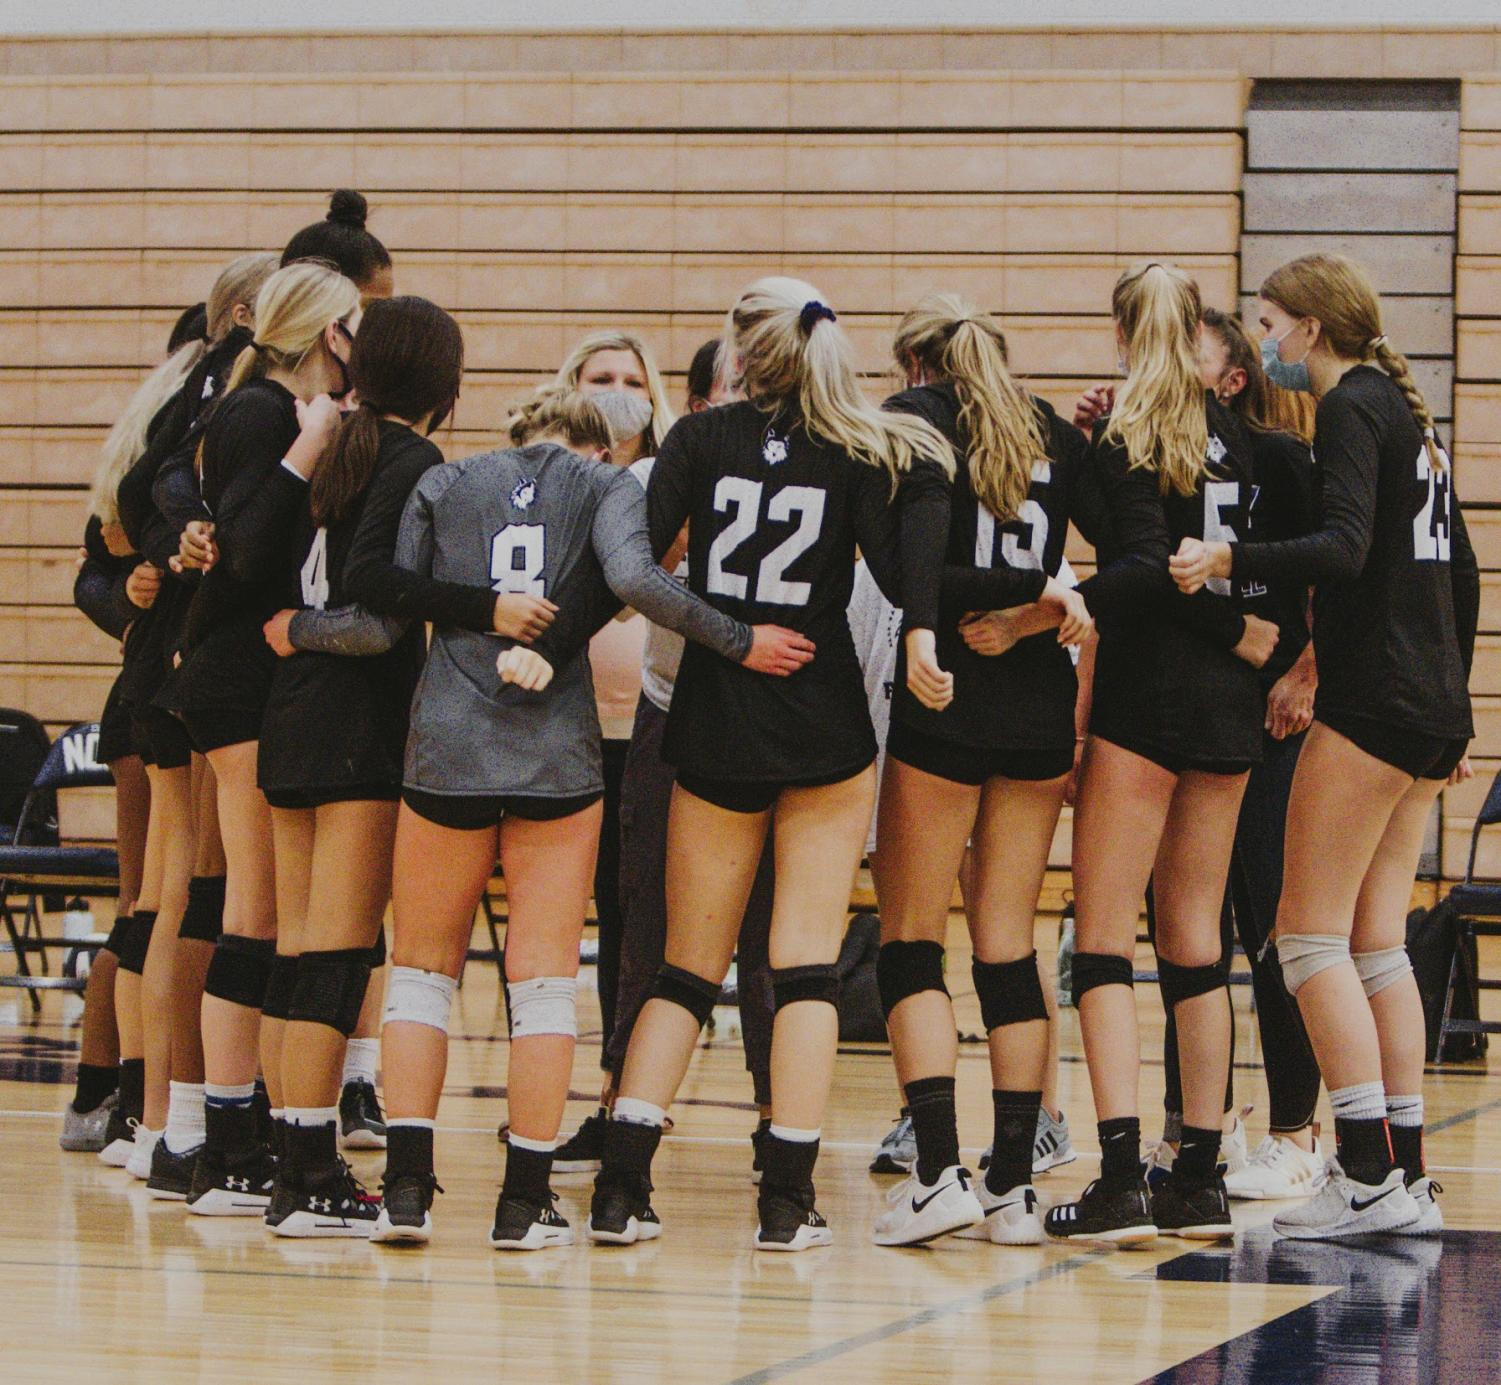 The Varsity volleyball team huddles together at the game against BVN.